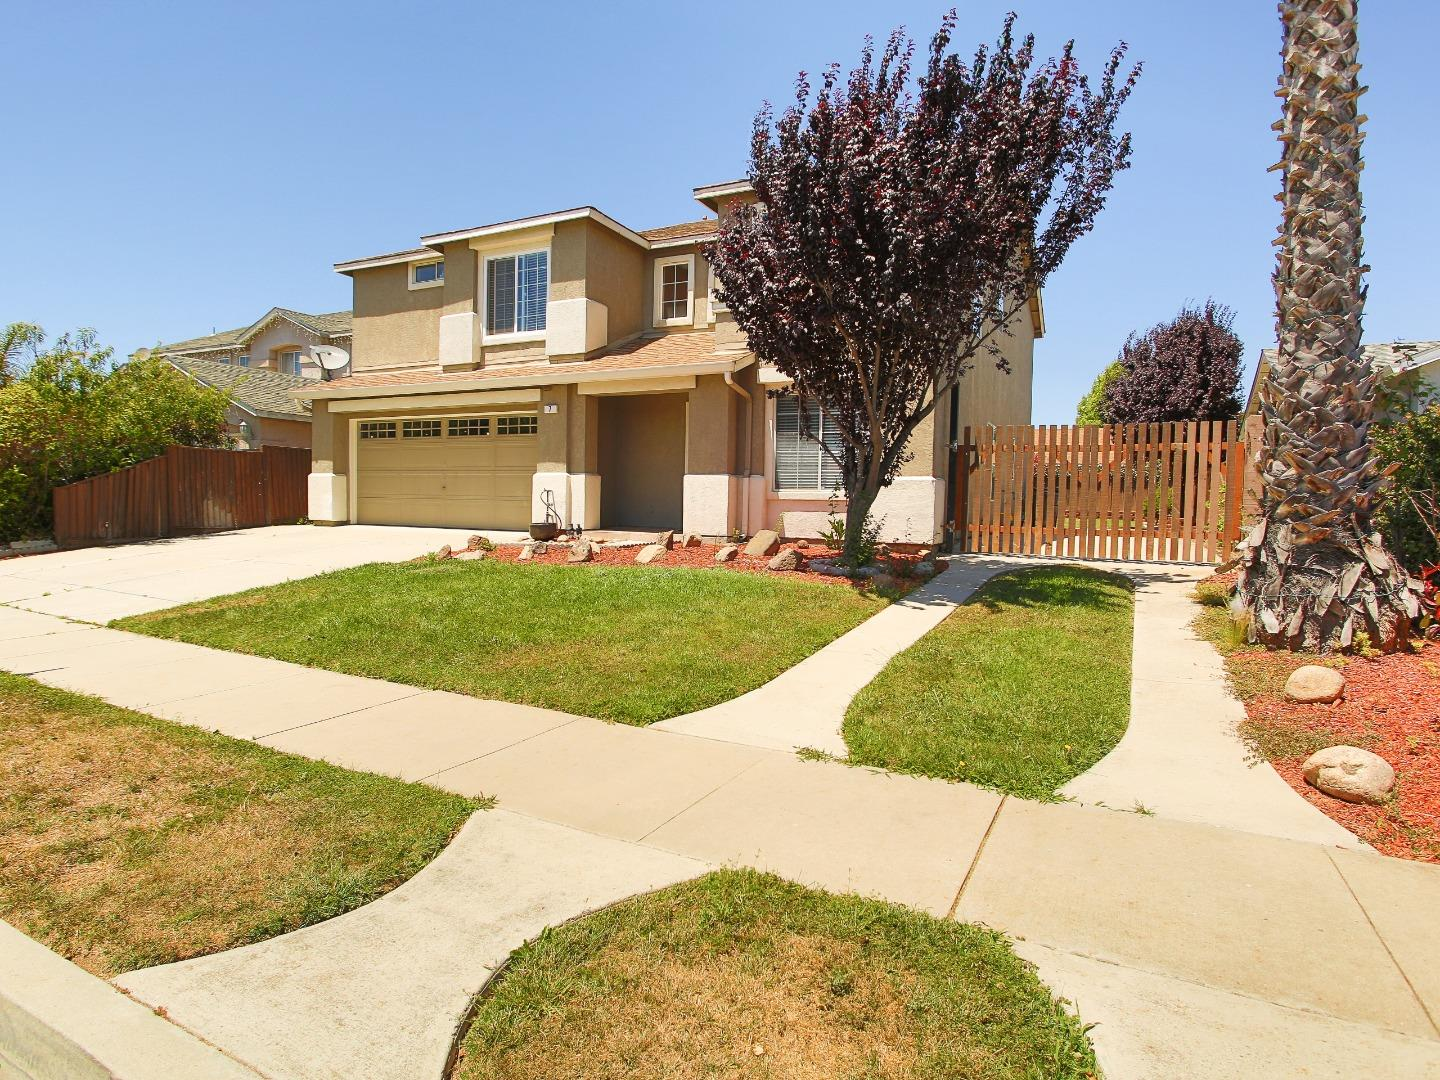 Detail Gallery Image 1 of 36 For 7 Chablis Cir, Salinas, CA 93906 - 4 Beds | 2/1 Baths